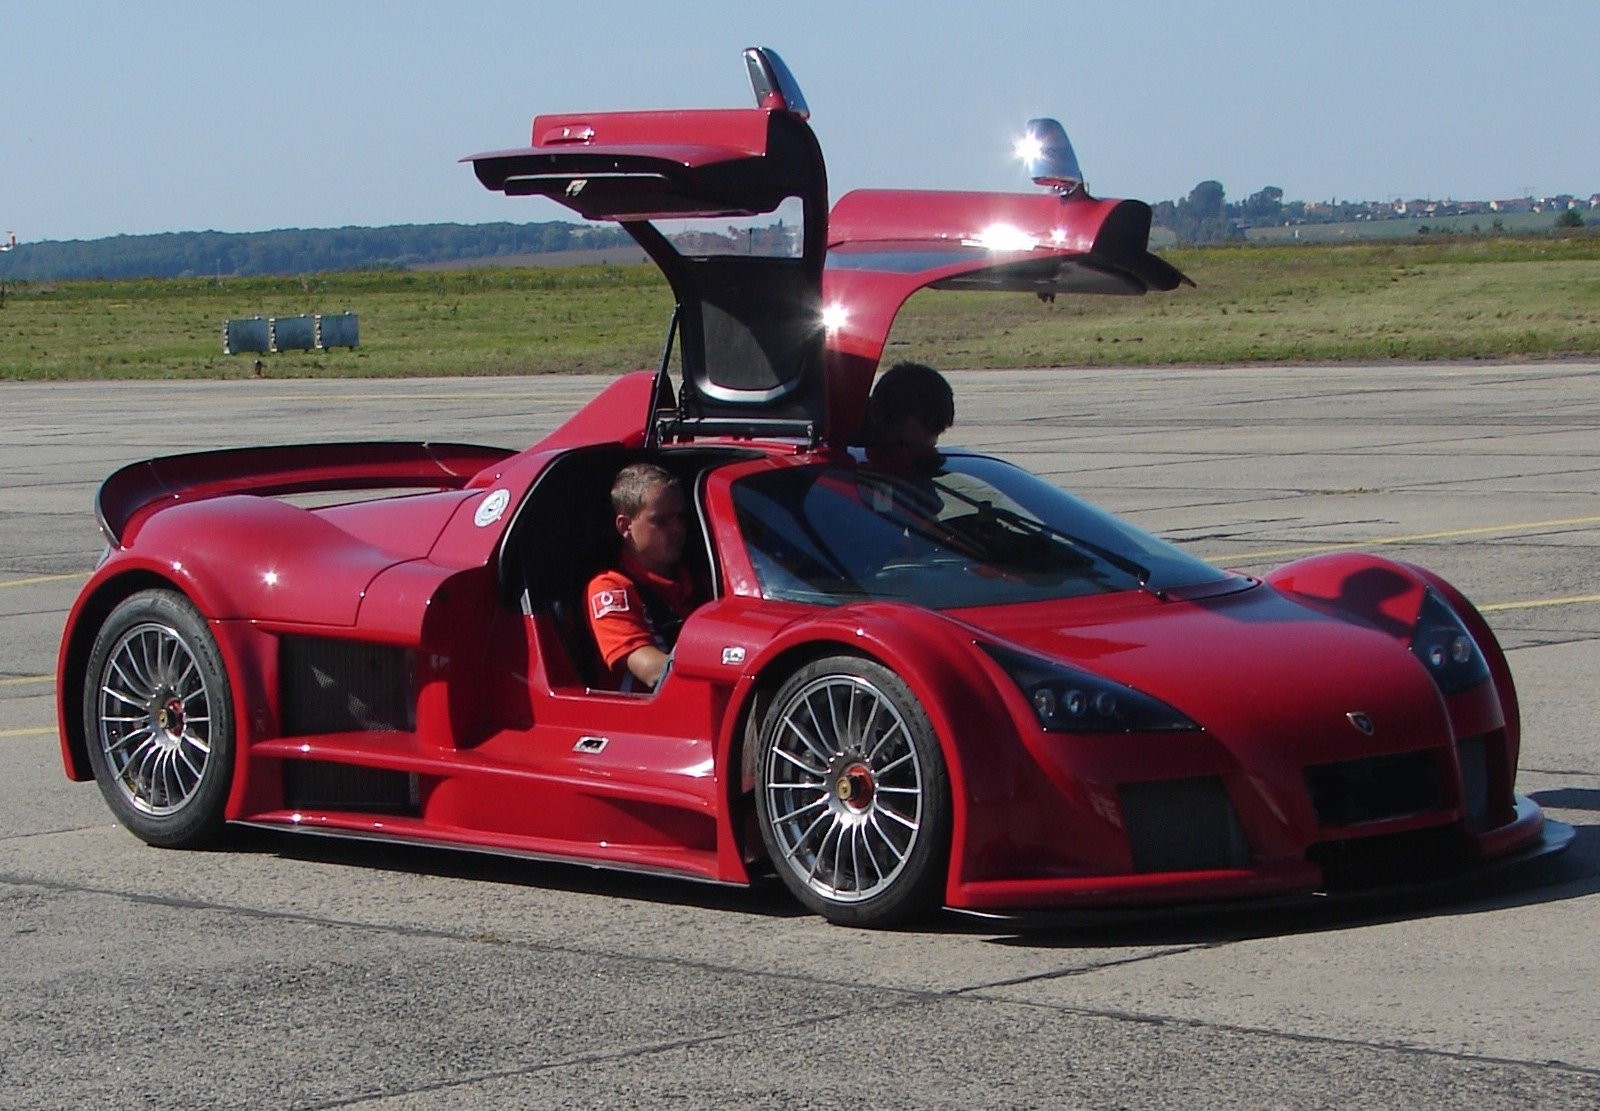 Cool Images Gumpert Apollo